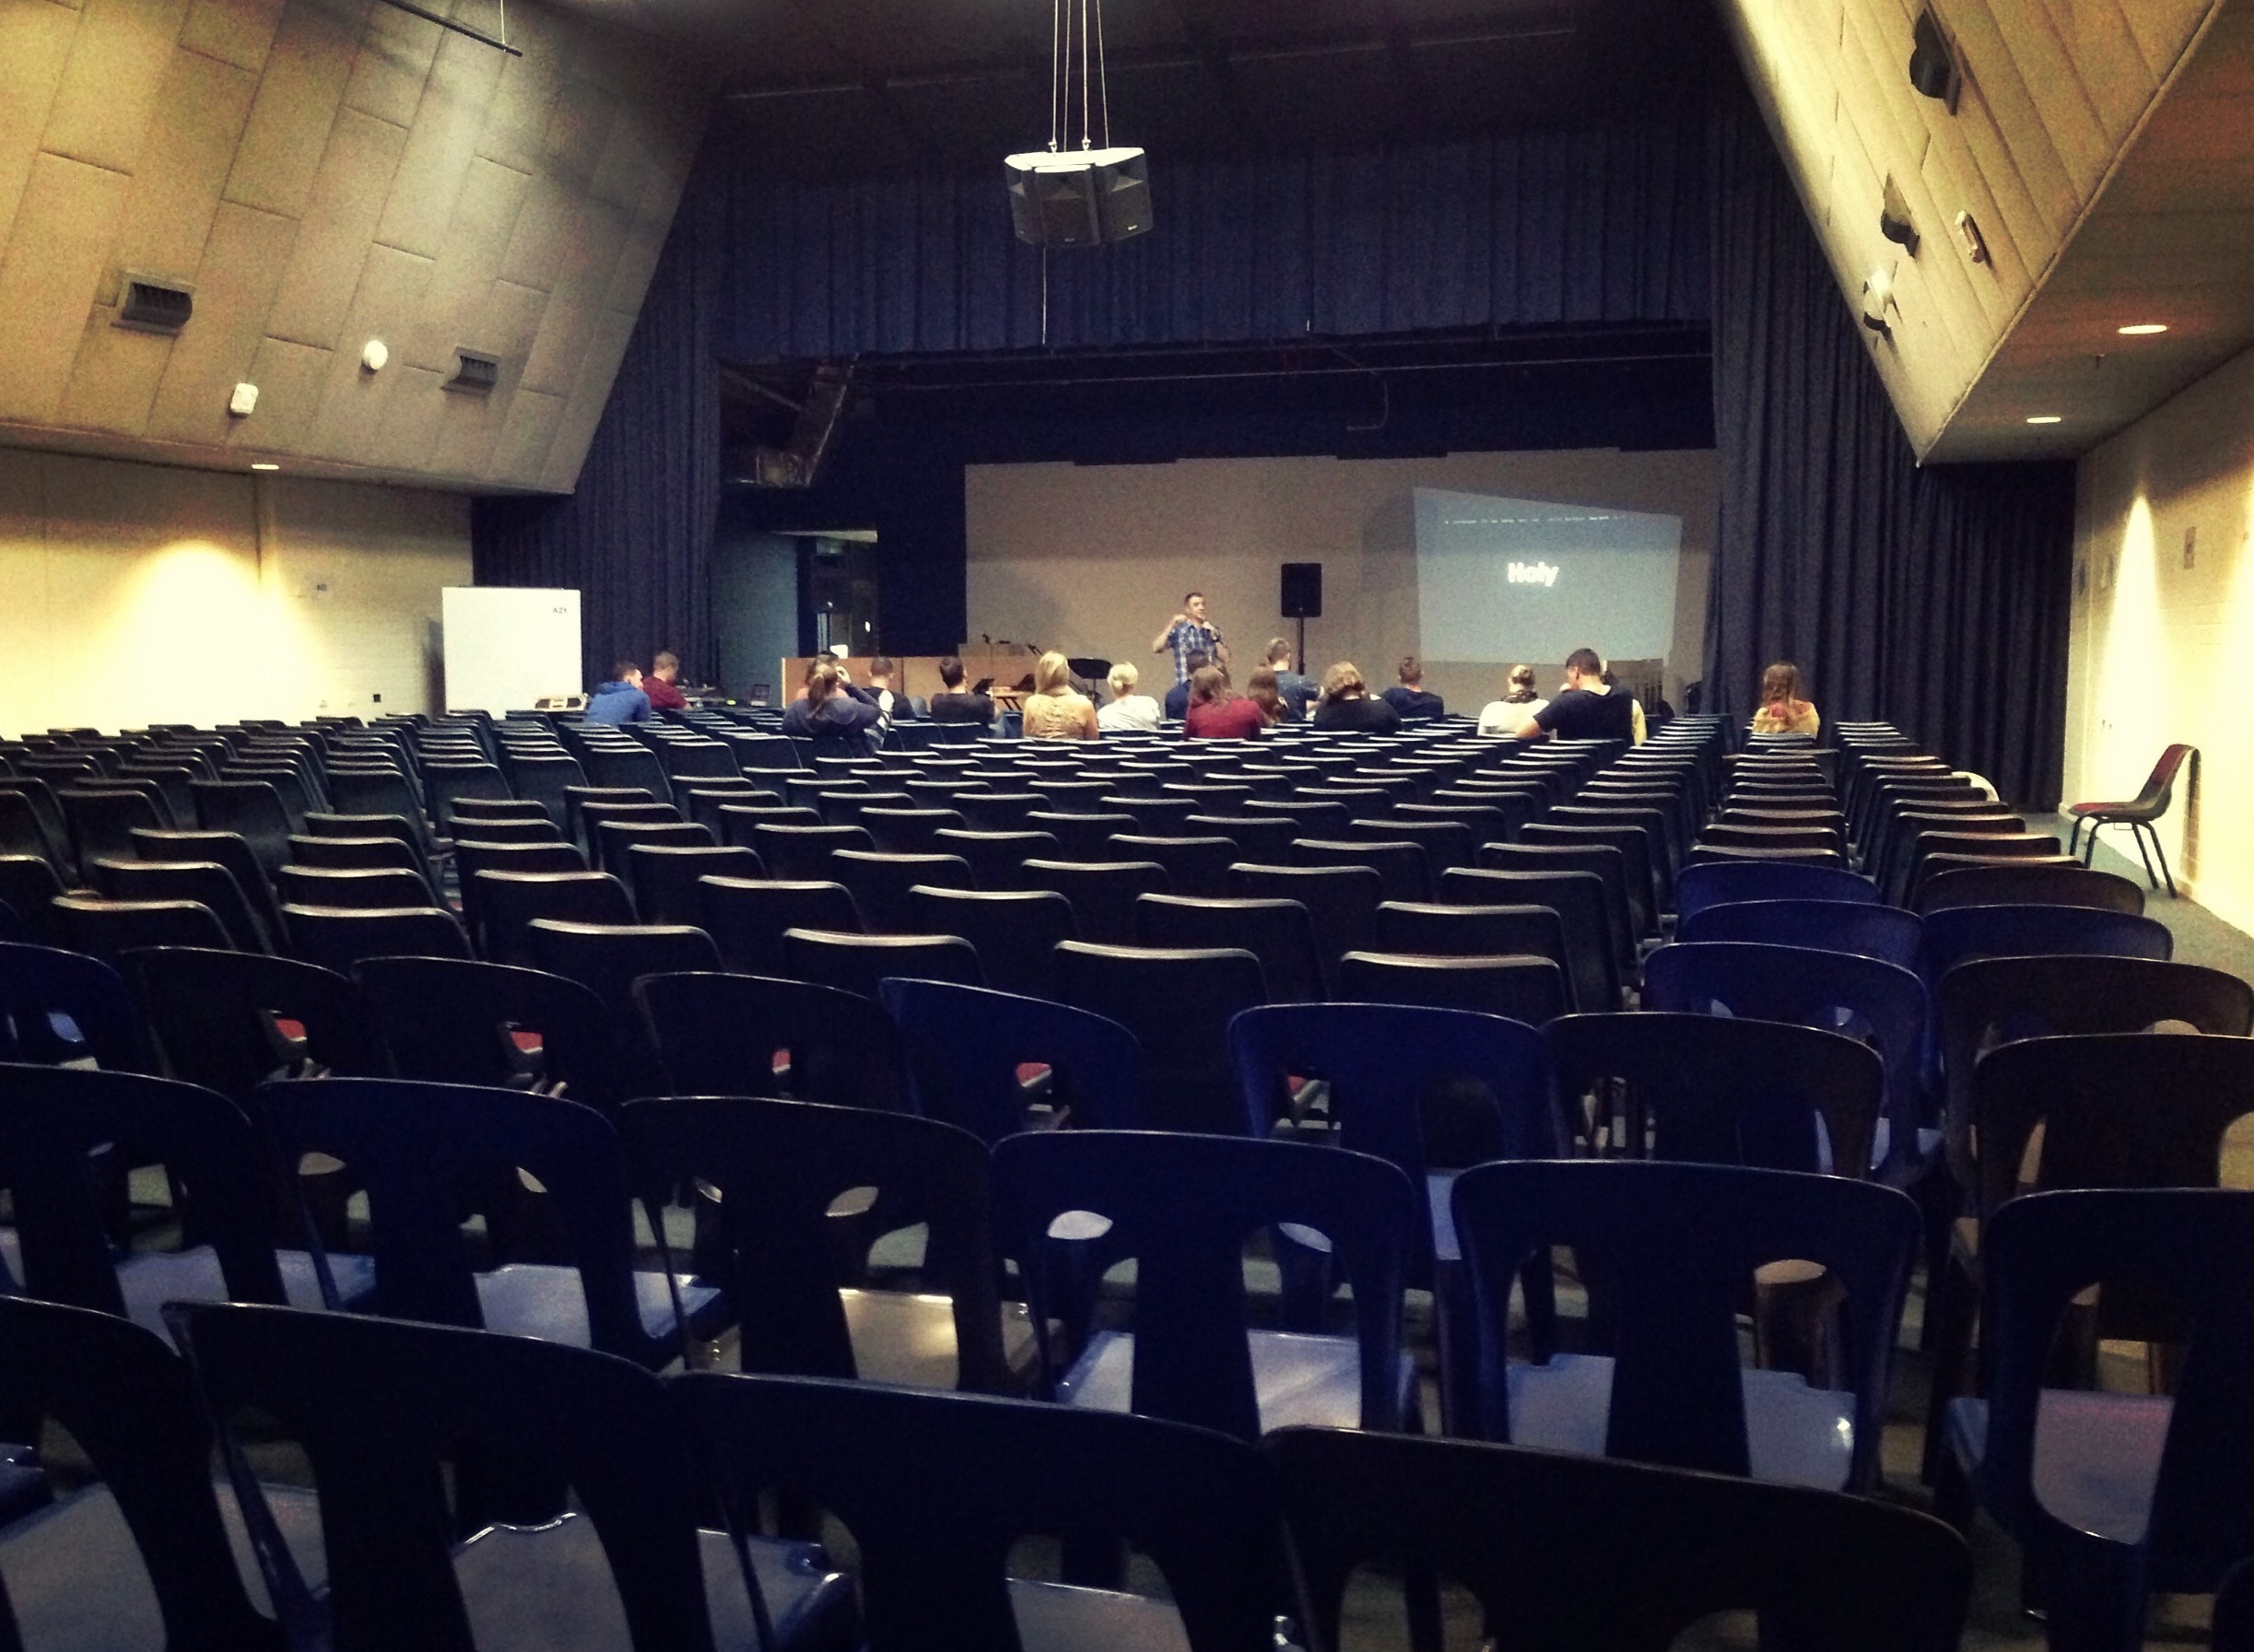 That week when the venue is set up for school assembly, and you don't have time to move the chairs, and you only fill the first two rows. #smallchurchlife